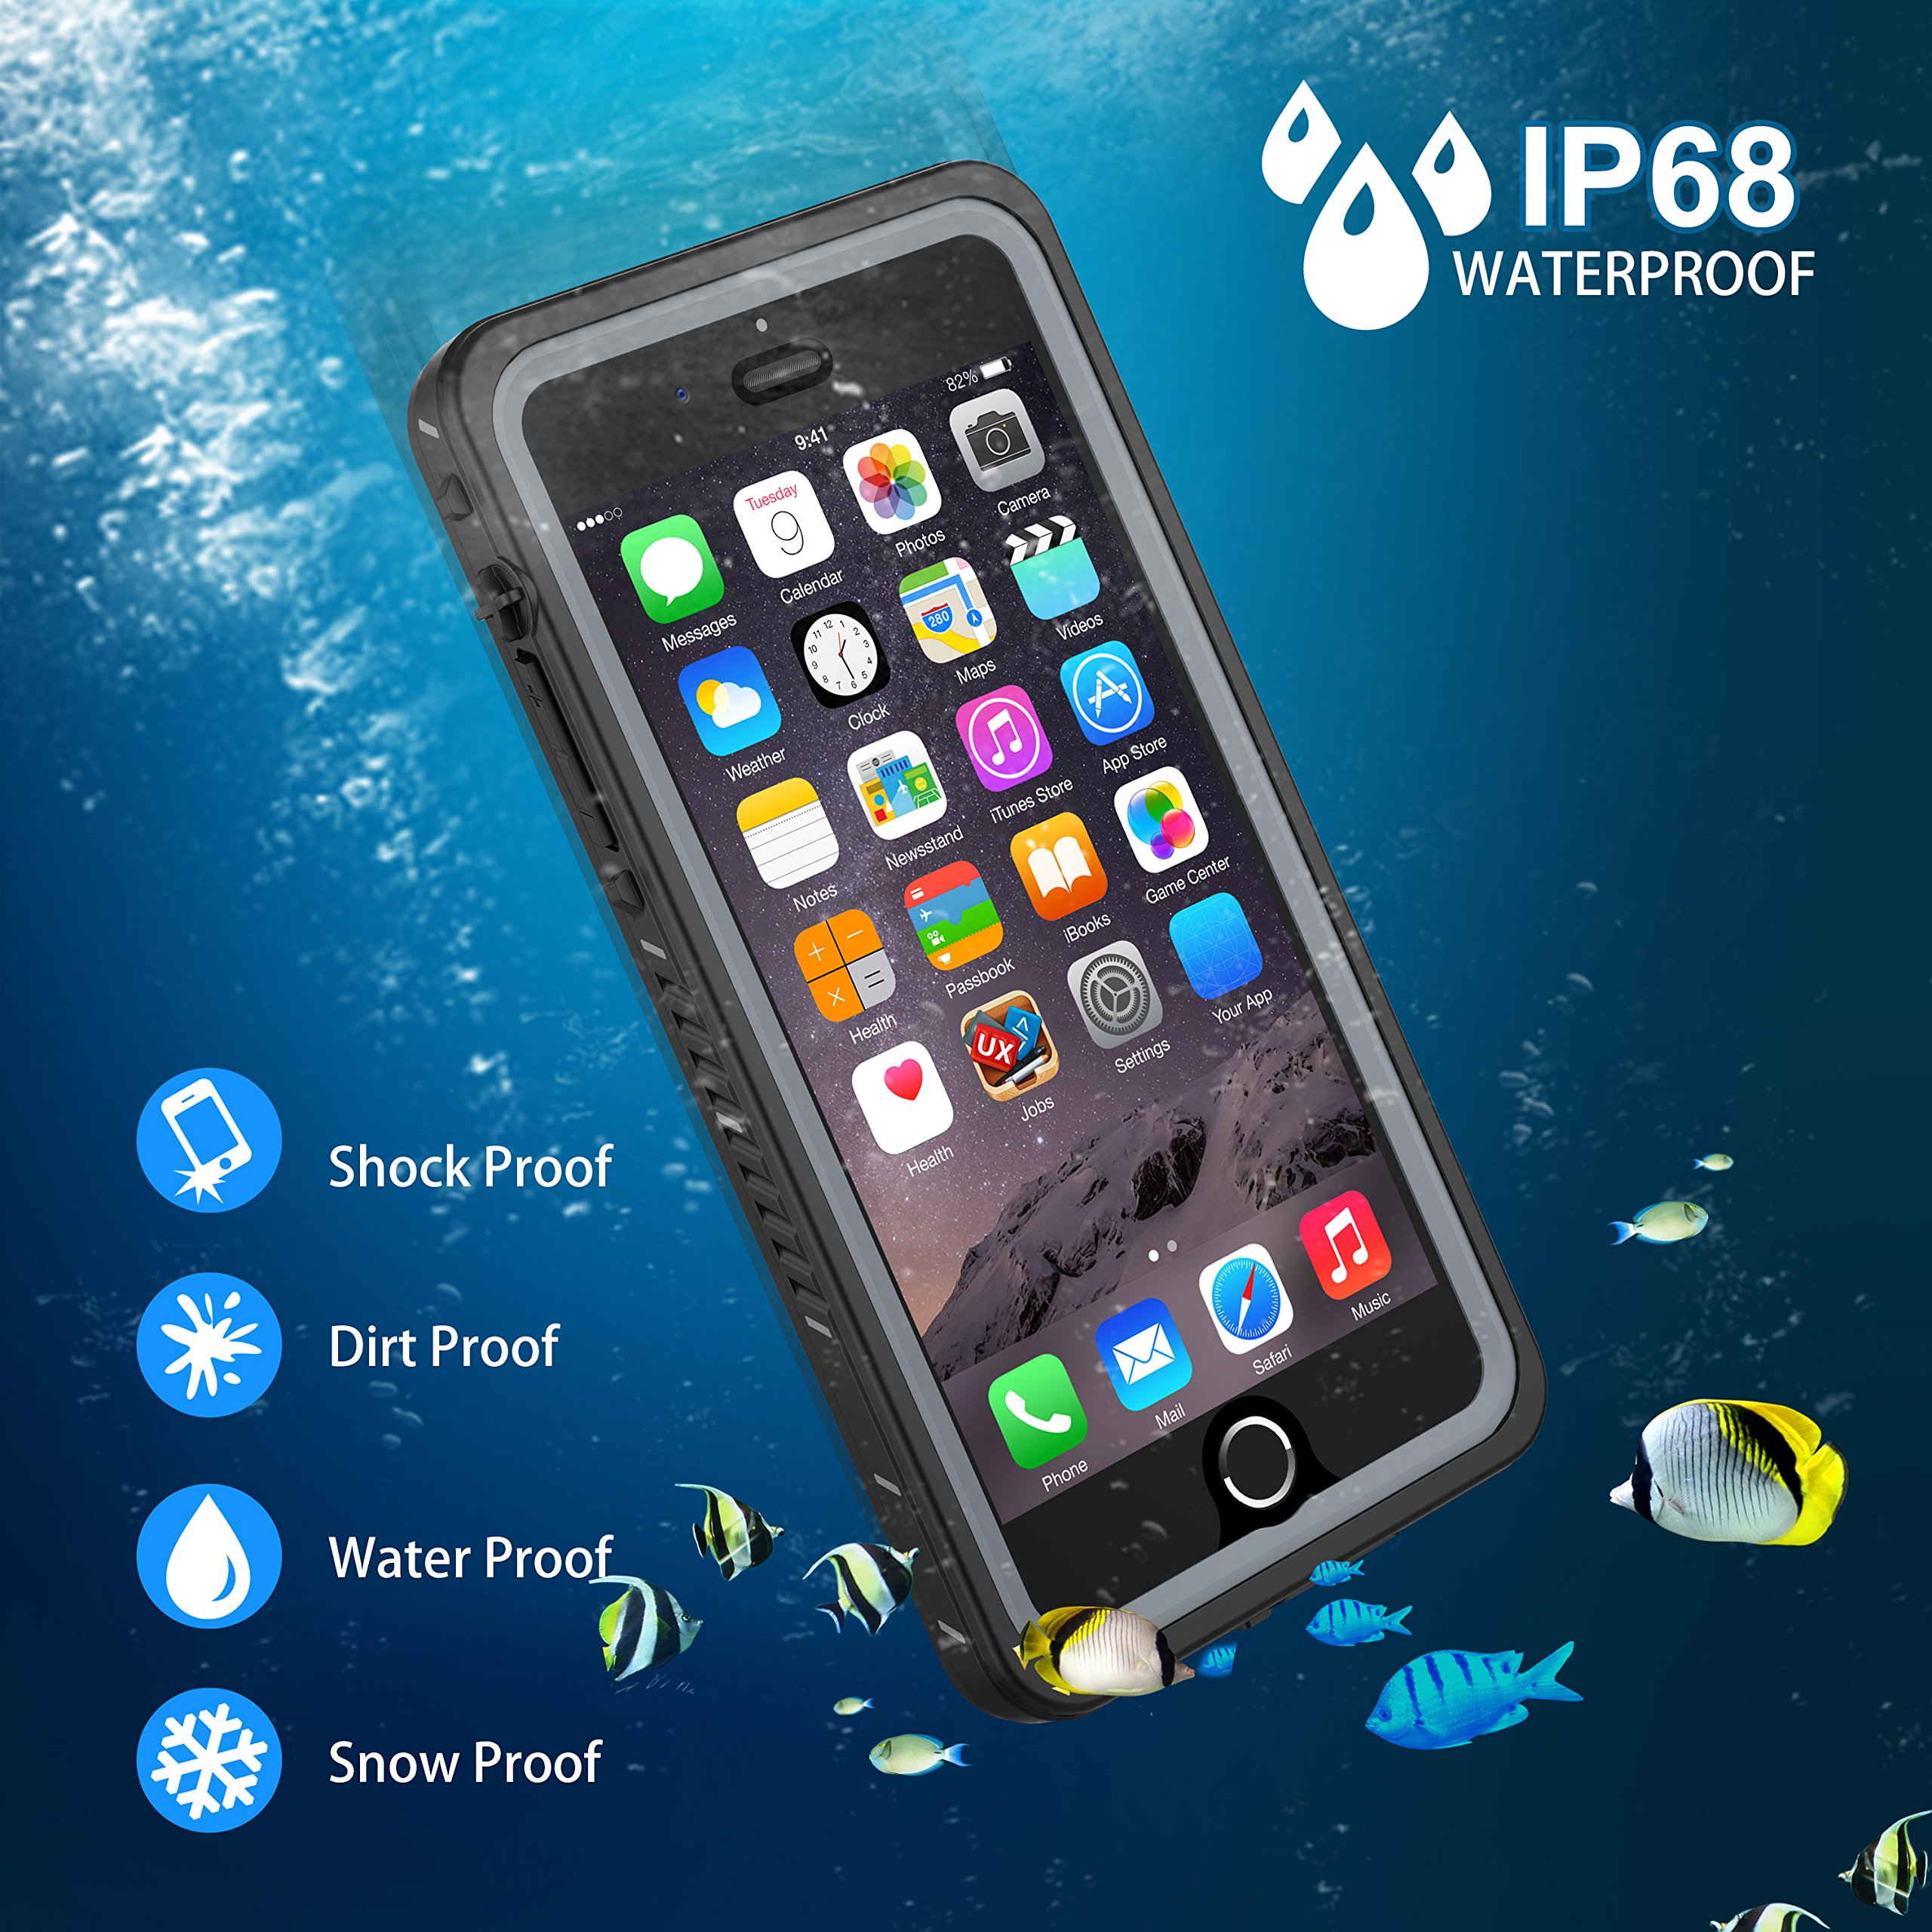 iPhone 7 Plus/8 Plus Waterproof Case, OTBBA Underwater Snowproof Dirtproof Shockproof IP68 Certified with Touch ID Full Sealed Cover Waterproof Case for iPhone 7 Plus/8 Plus-5.5in (Clear) by OTBBA (Image #2)